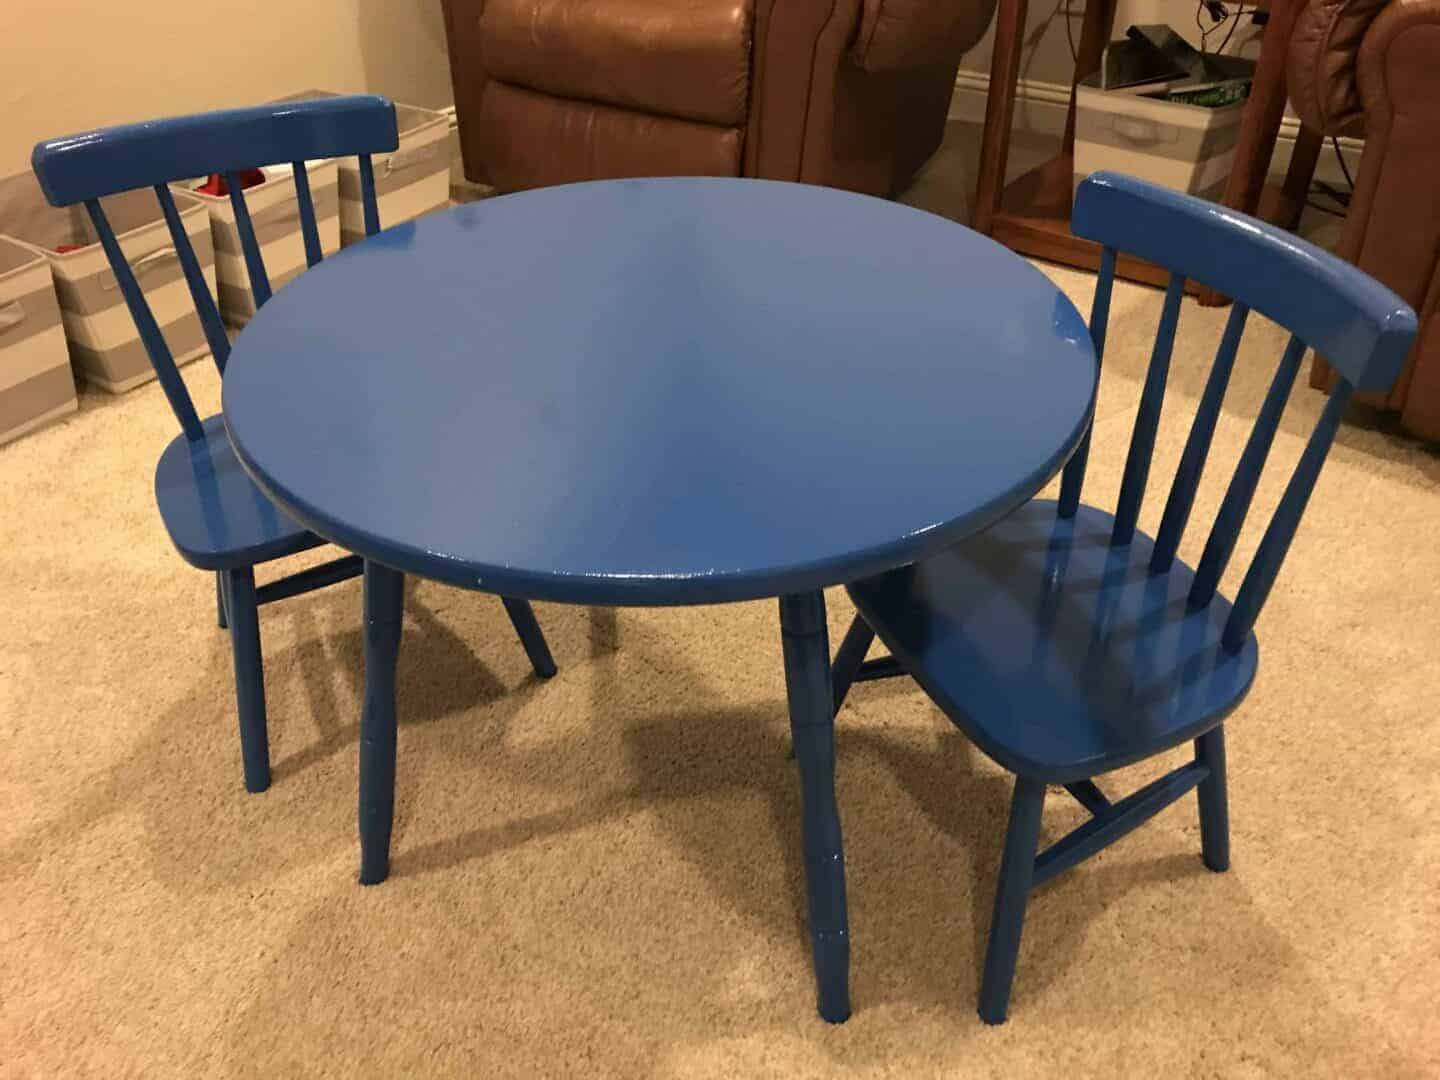 furniture refinish